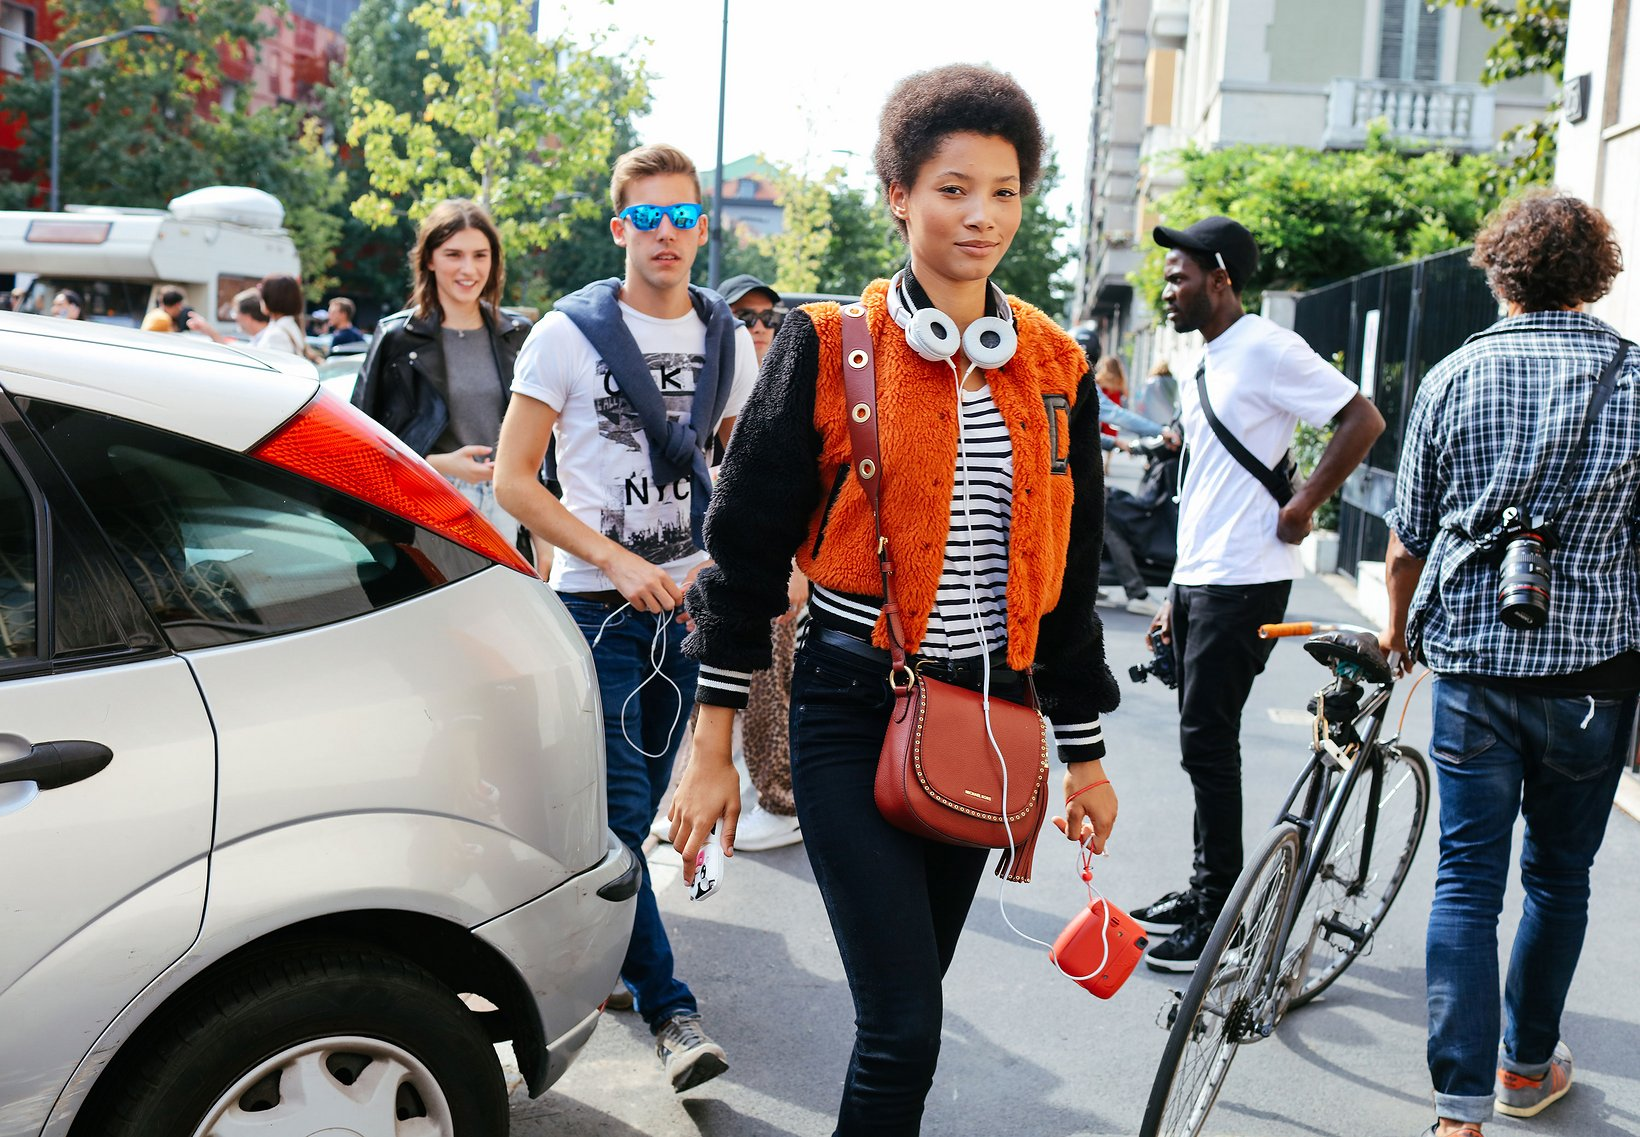 from:  http://www.vogue.com/slideshow/13481870/milan-fashion-week-street-style-spring-2017-mfw-phil-oh/#37